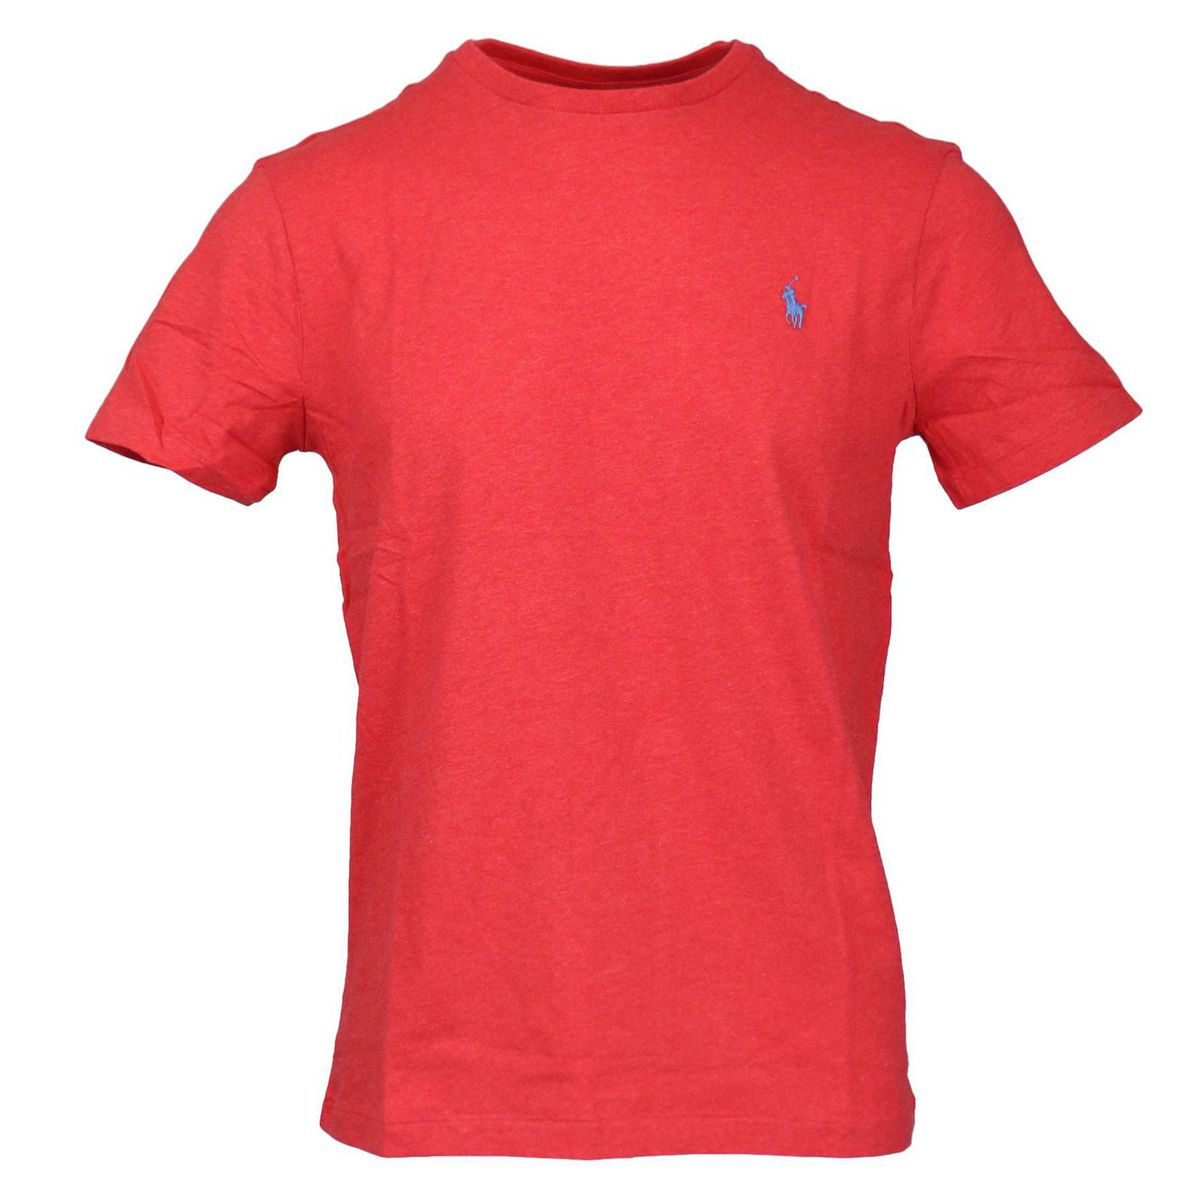 Cotton T-shirt with contrasting logo embroidery Red Polo Ralph Lauren